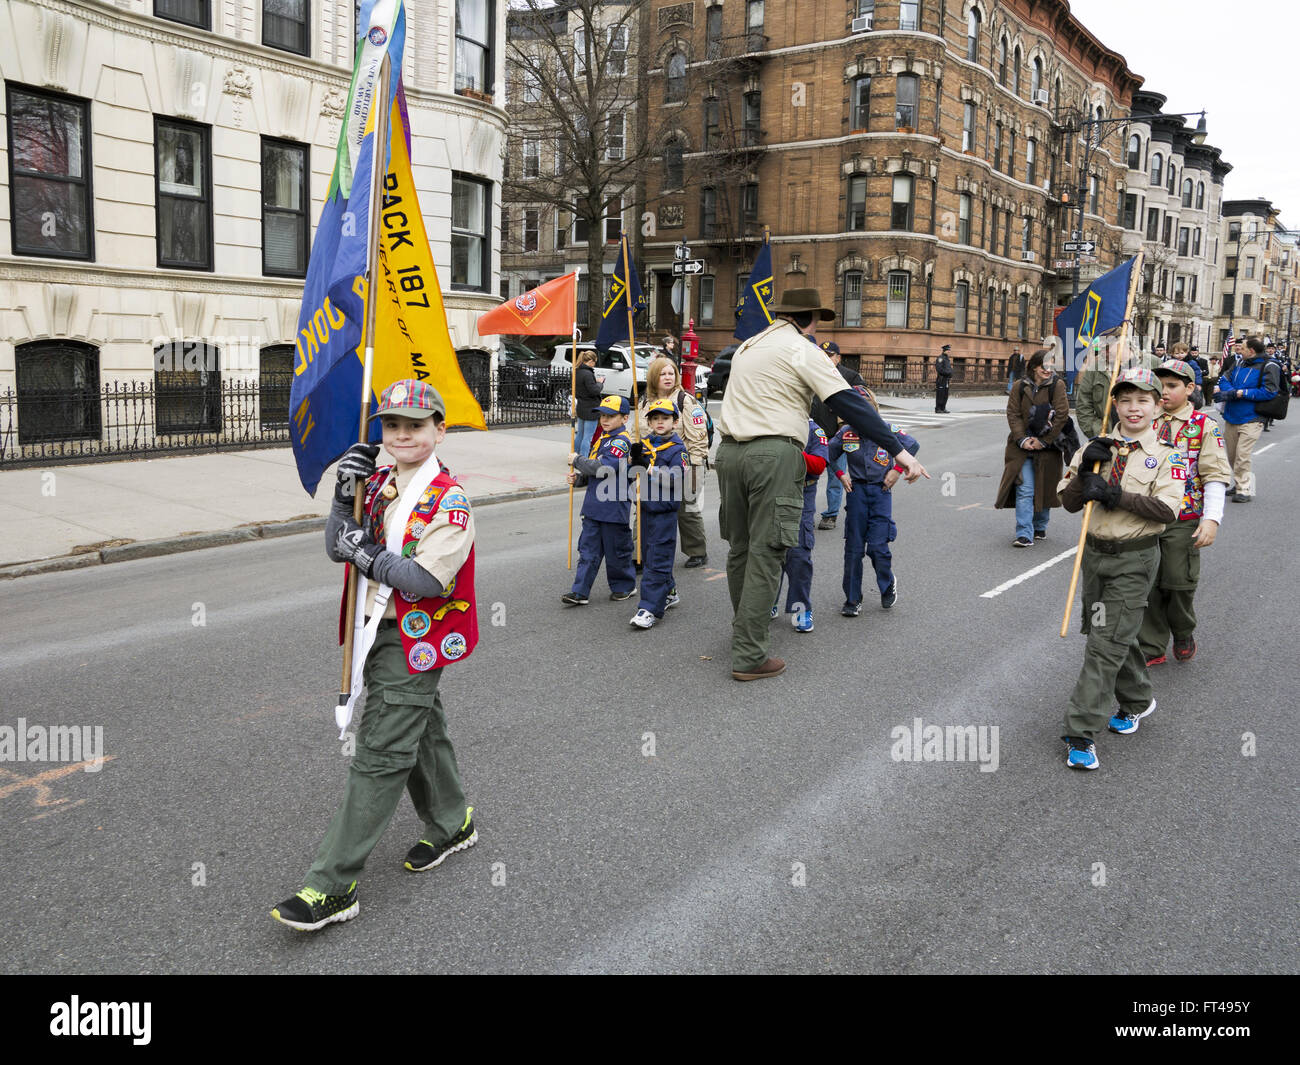 Boy Scout troop at St.Patrick's Day Parade in the Park Slope neighborhood of Brooklyn, New York, 2016. - Stock Image